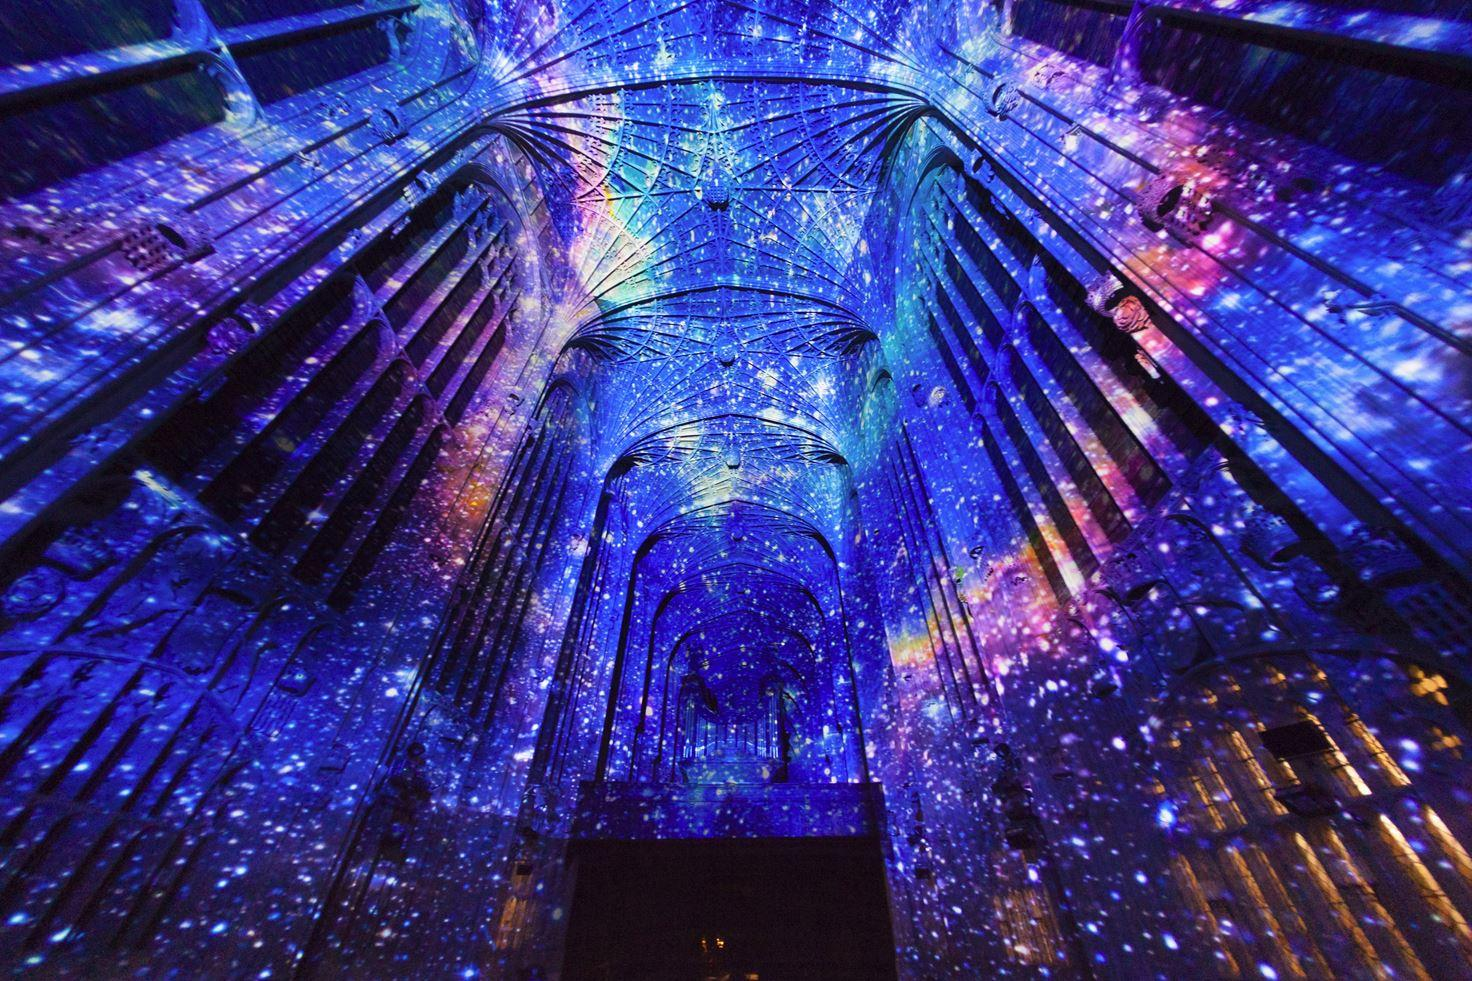 Immersive Projections in King's College Chapel, University of Cambridge (1)